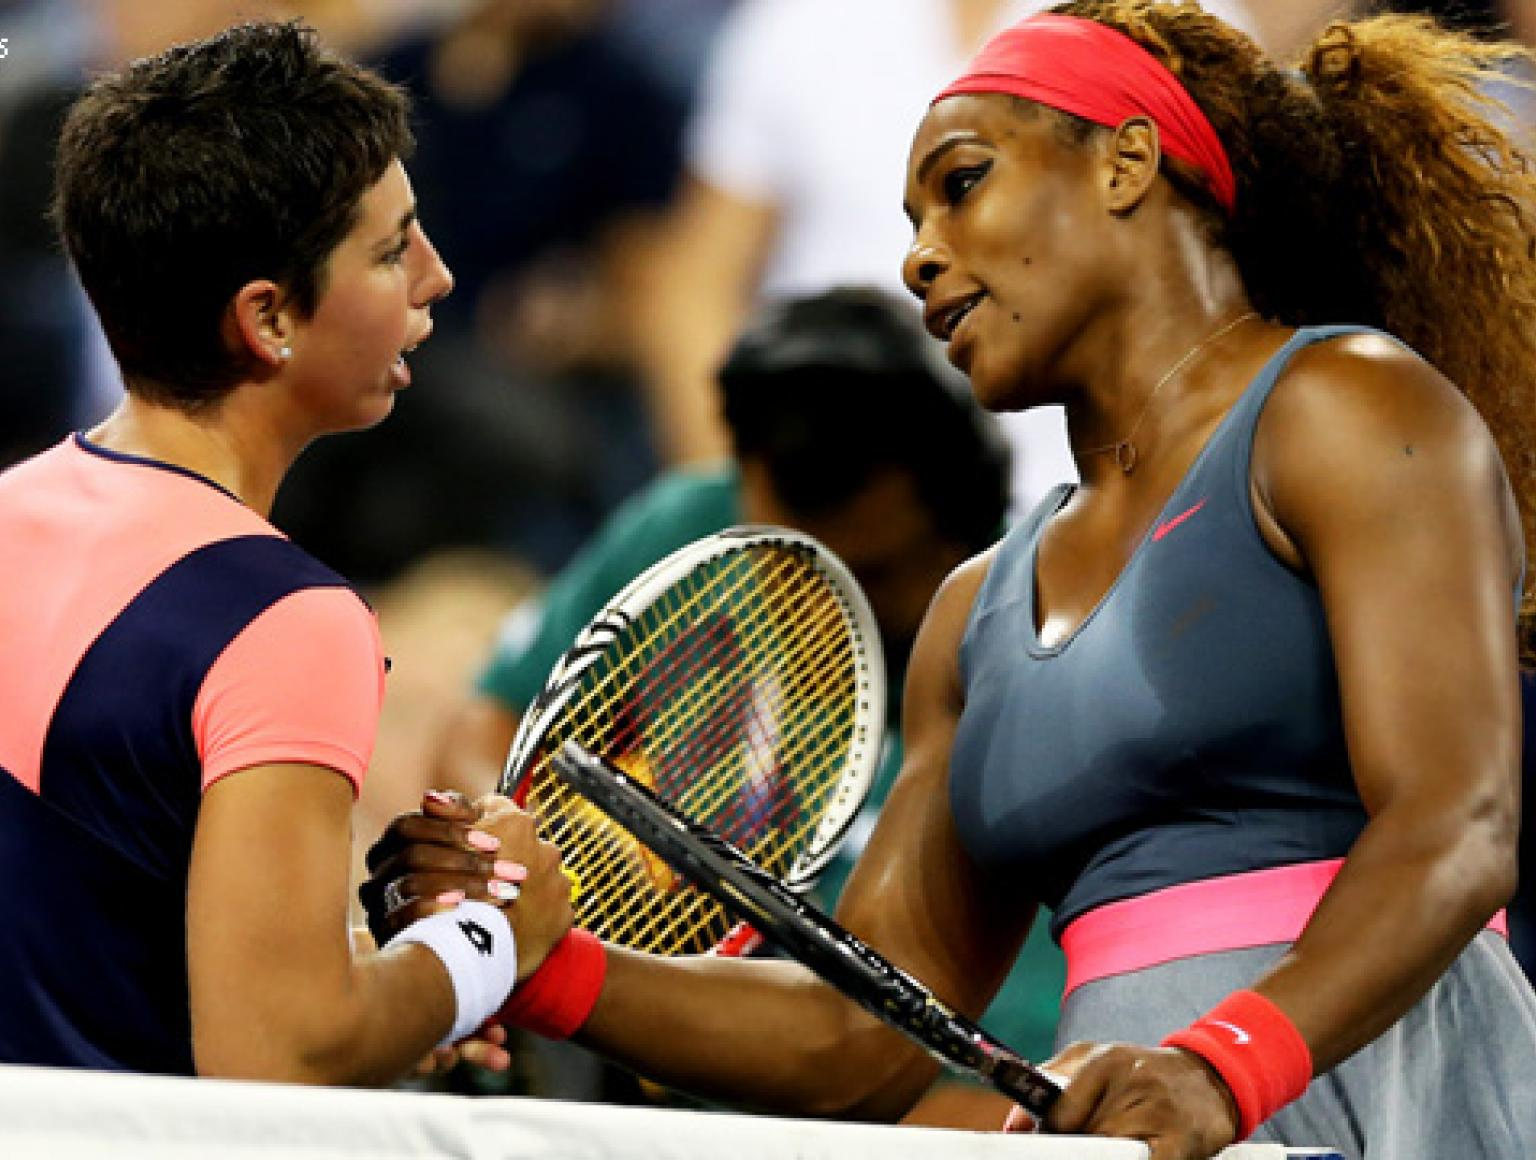 Serena set out to victory with Navarro sending a backhand wide